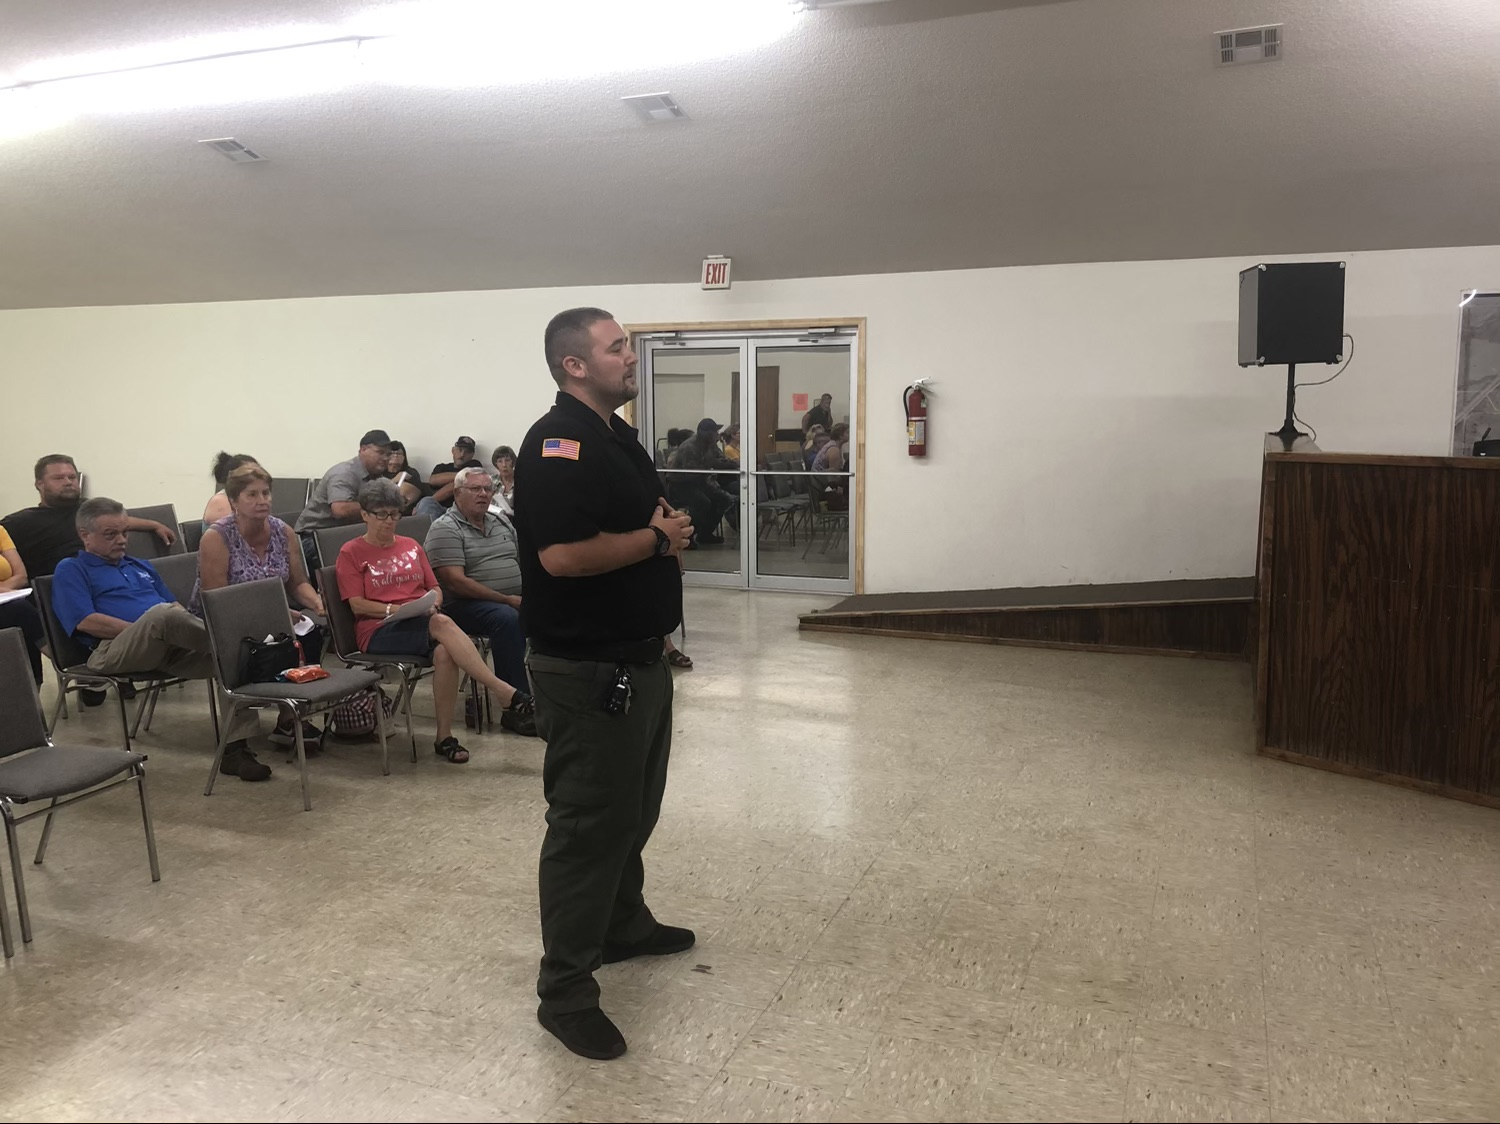 Officer Tyler Stroup stands at the Kellyville Board meeting and gives his two weeks' notice after hearing the board's decision not to promote Chief Davis.